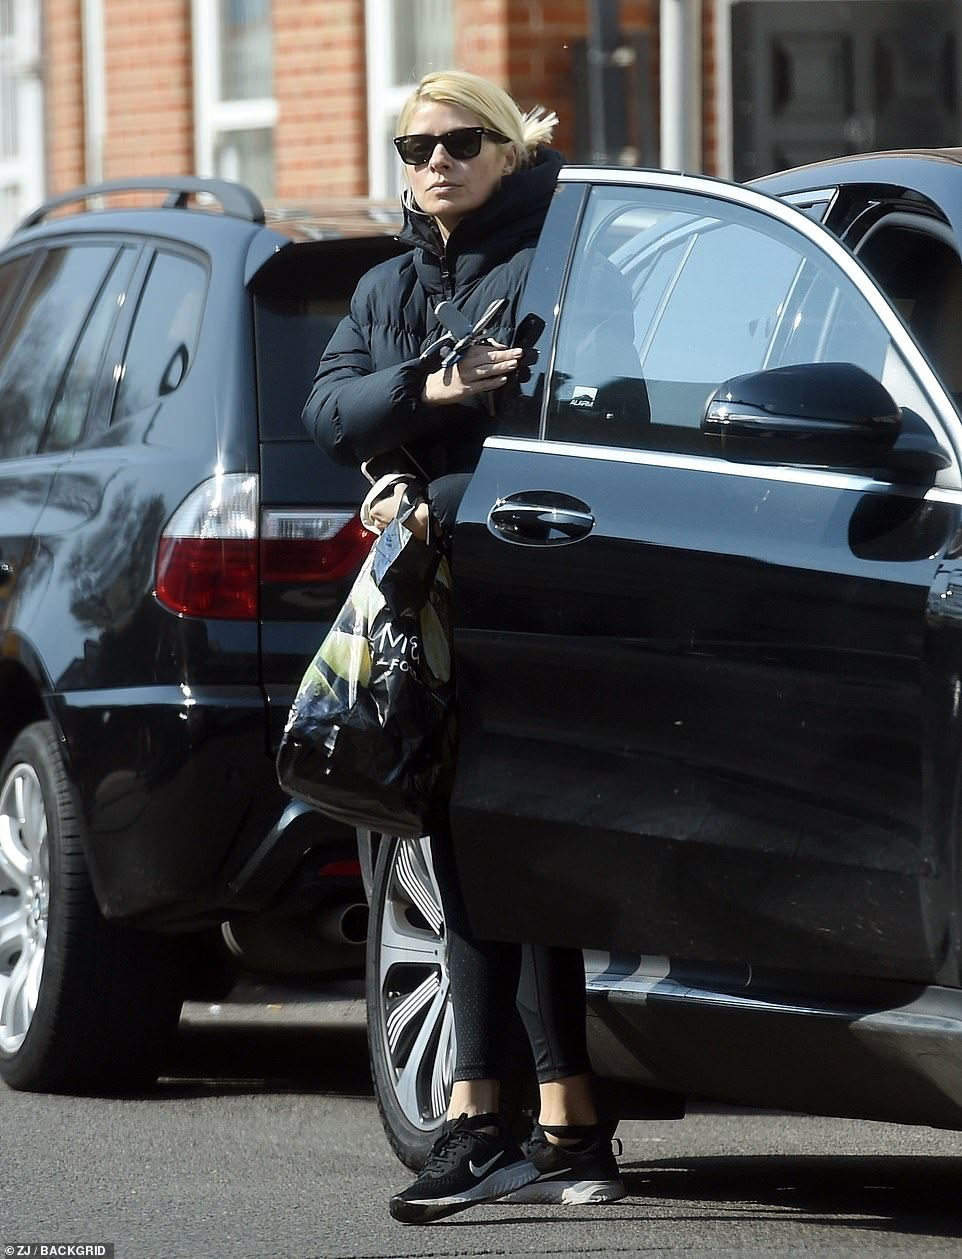 Chilled: While the TV star swept her blonde tresses into a bun and shielded her eyes with dark sunglasses